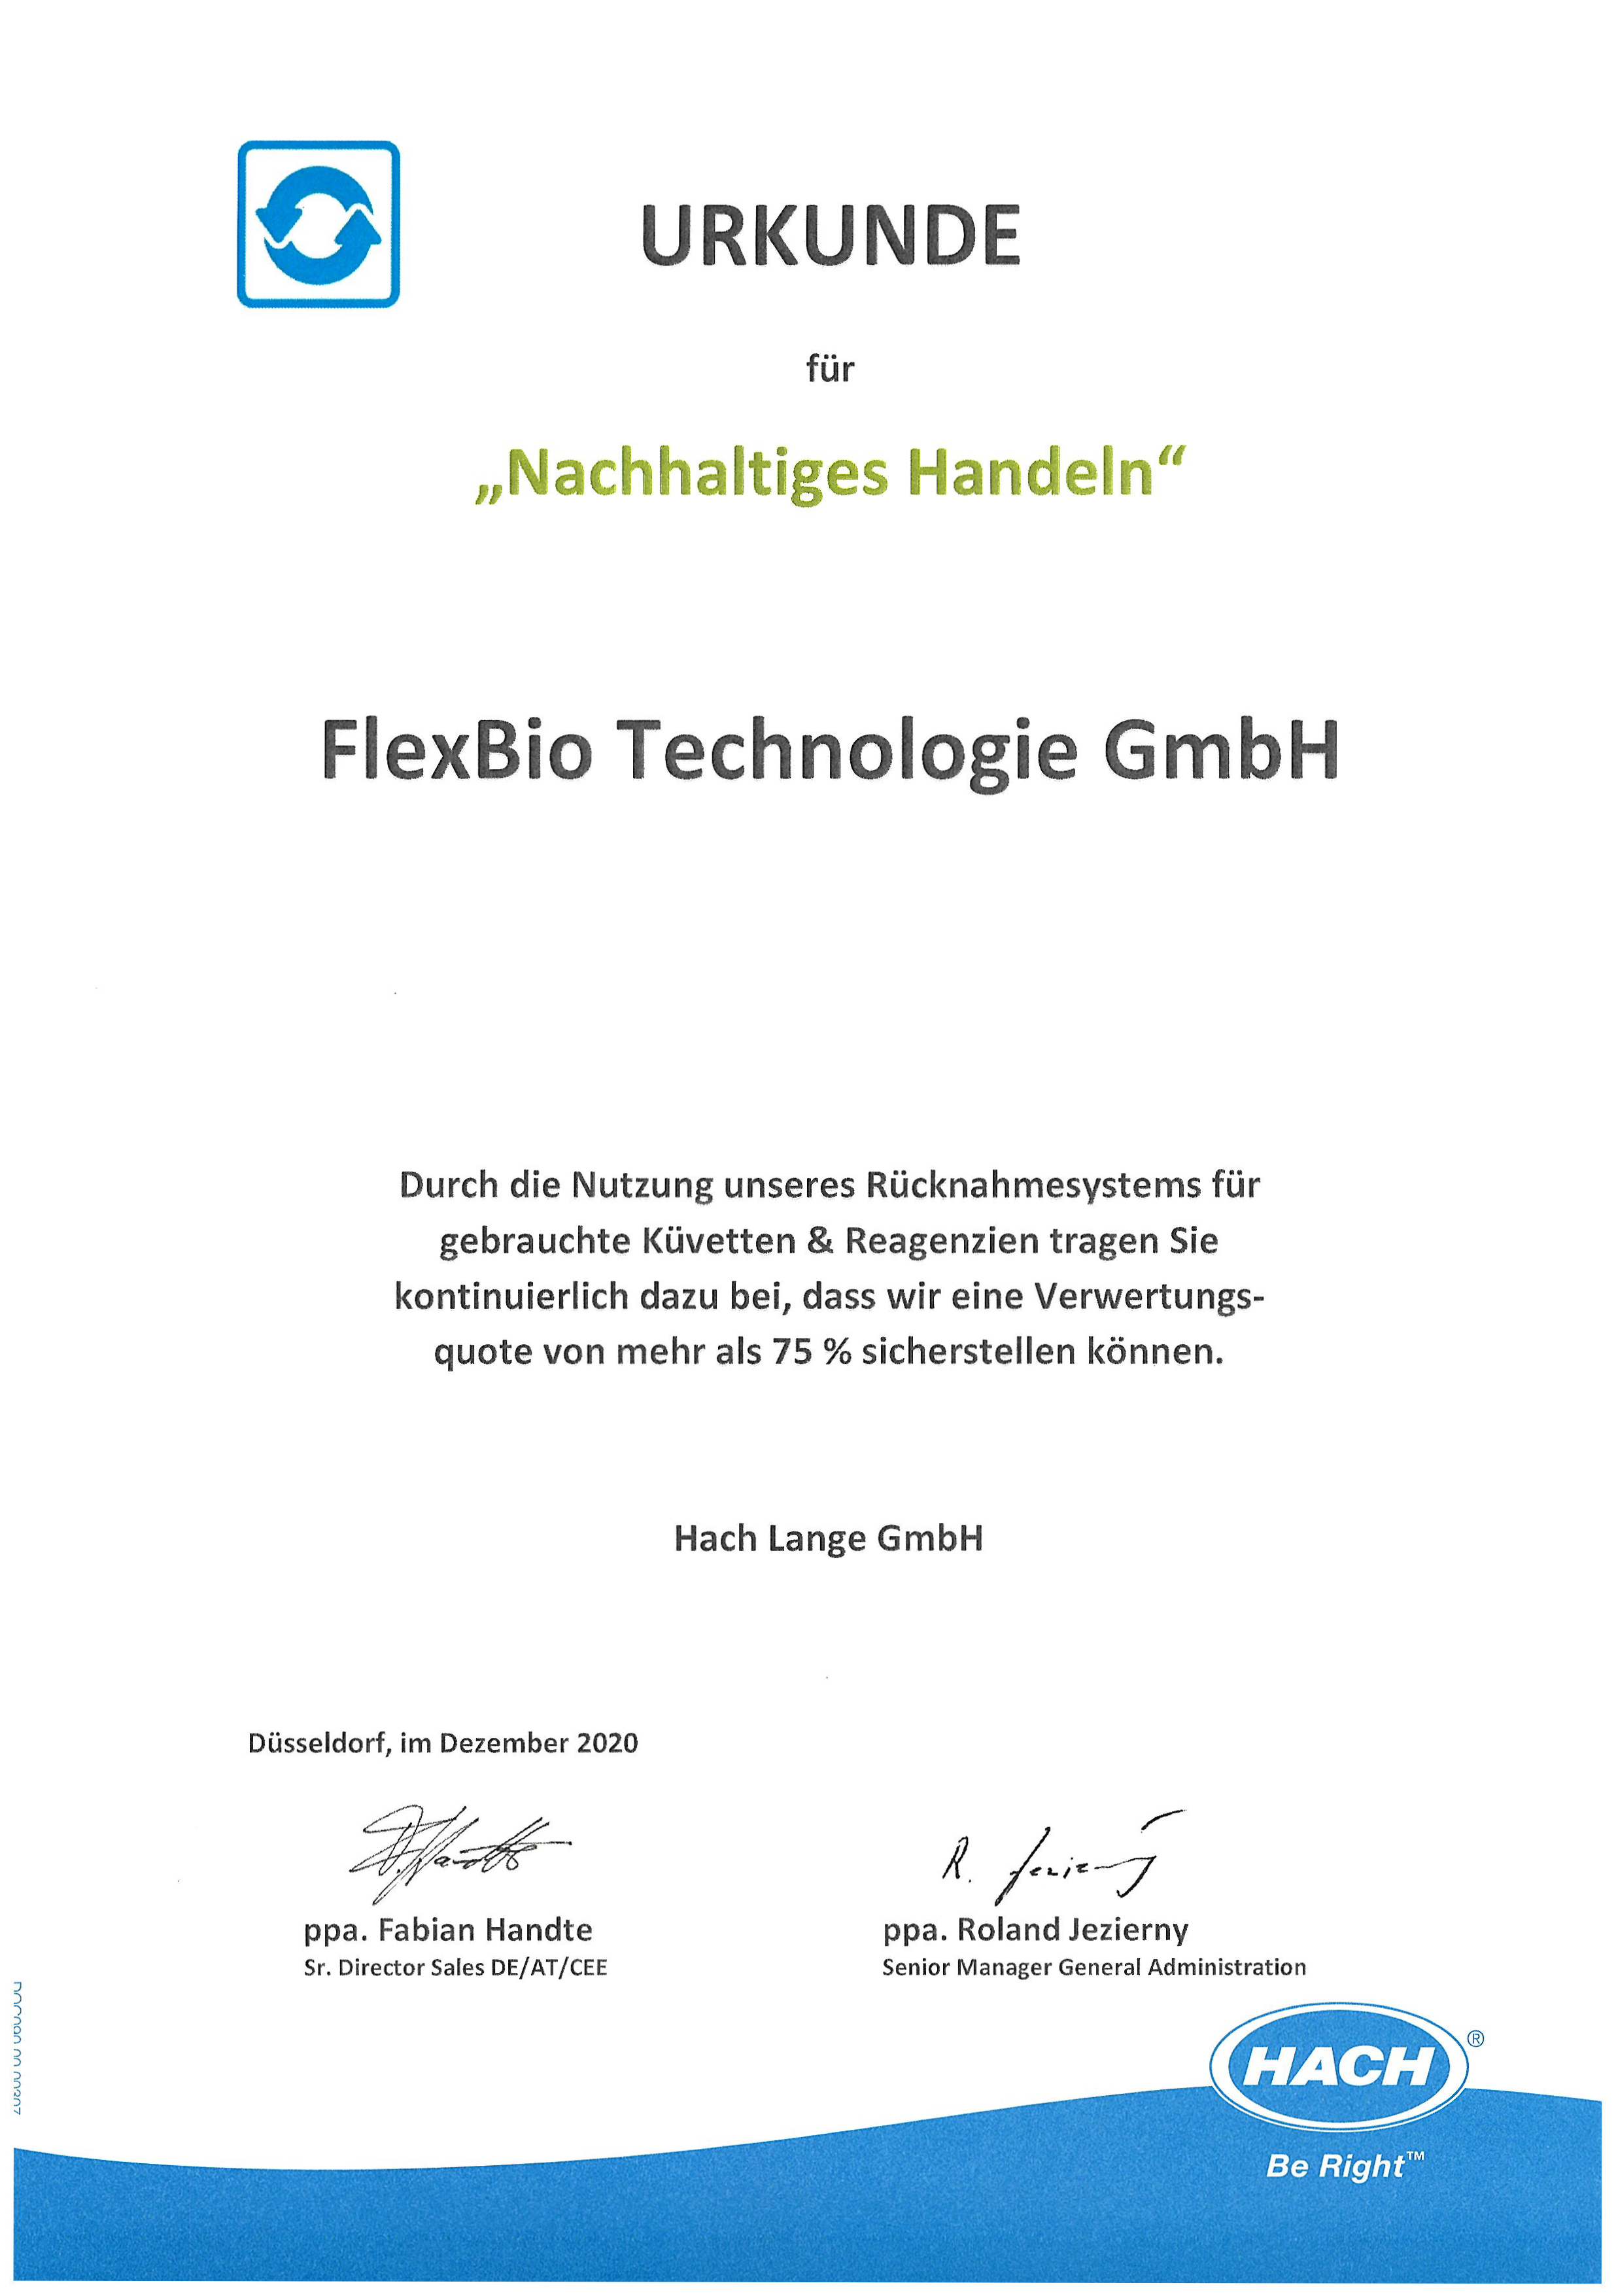 Certificate from the Hach Company for sustainable action to FlexBio Technologie GmbH